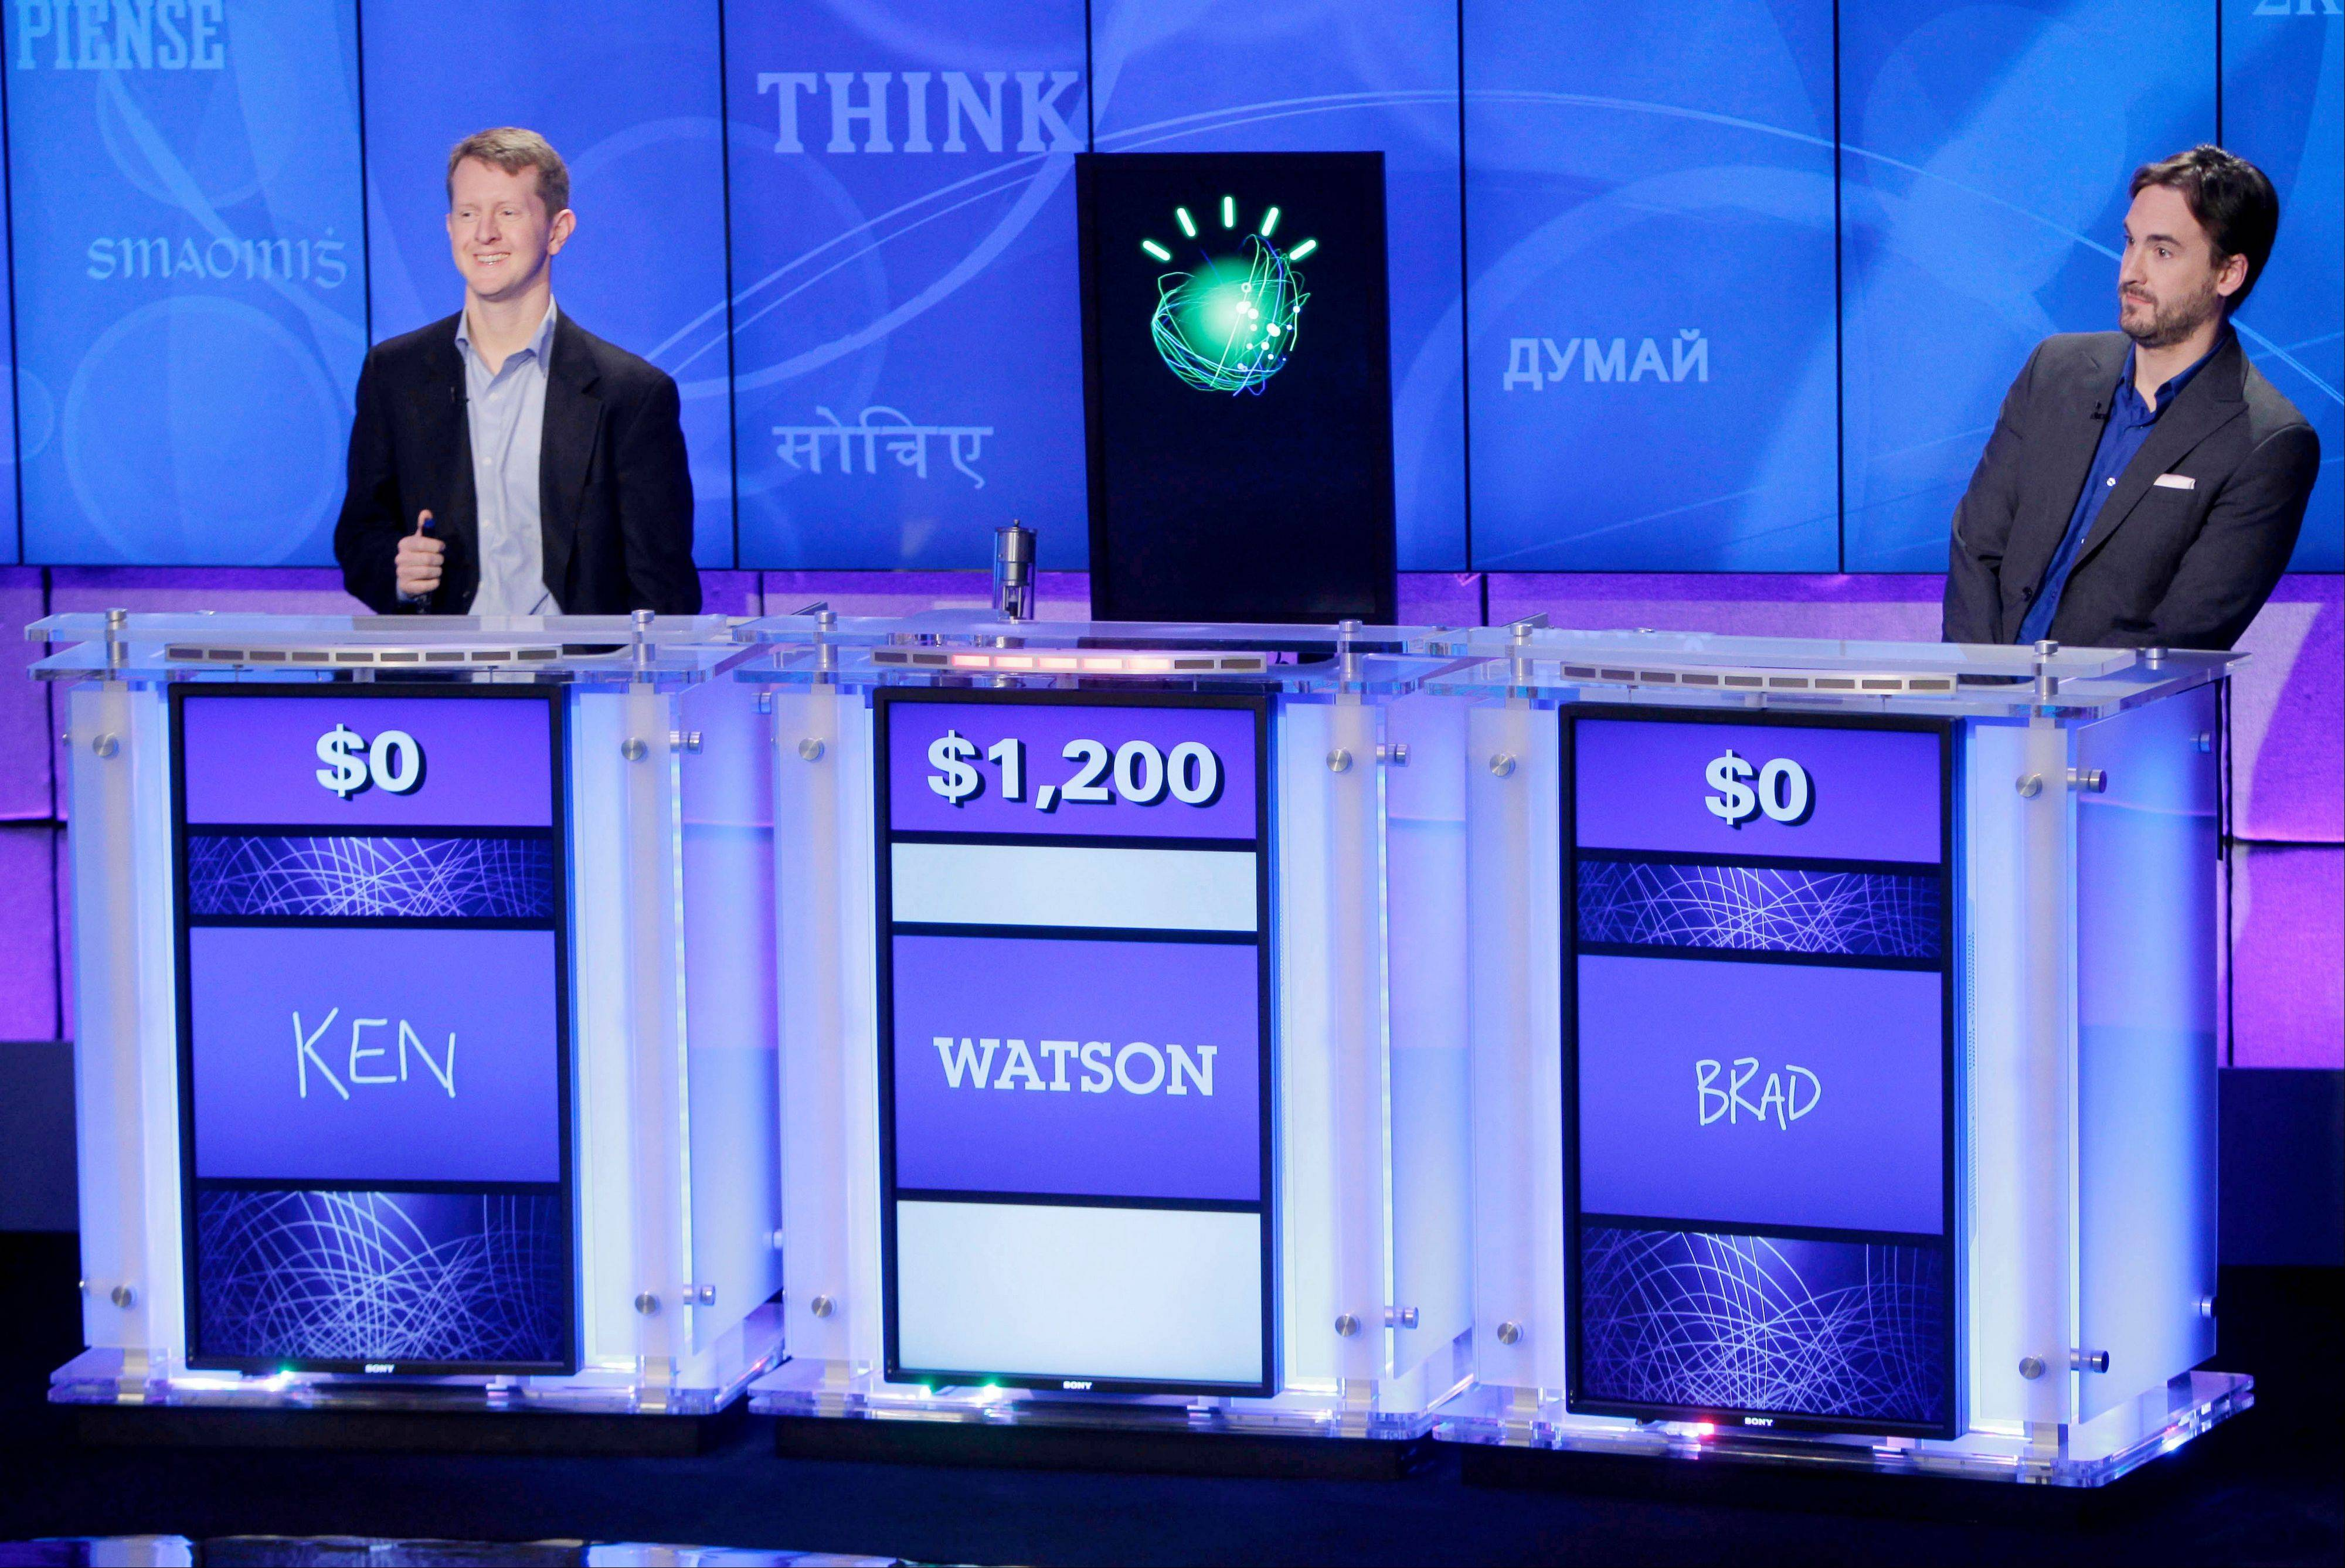 """Jeopardy!"" champions Ken Jennings, left, and Brad Rutter, right, flank a prop representing Watson during a practice round of the ""Jeopardy!"" quiz show in Yorktown Heights, N.Y."